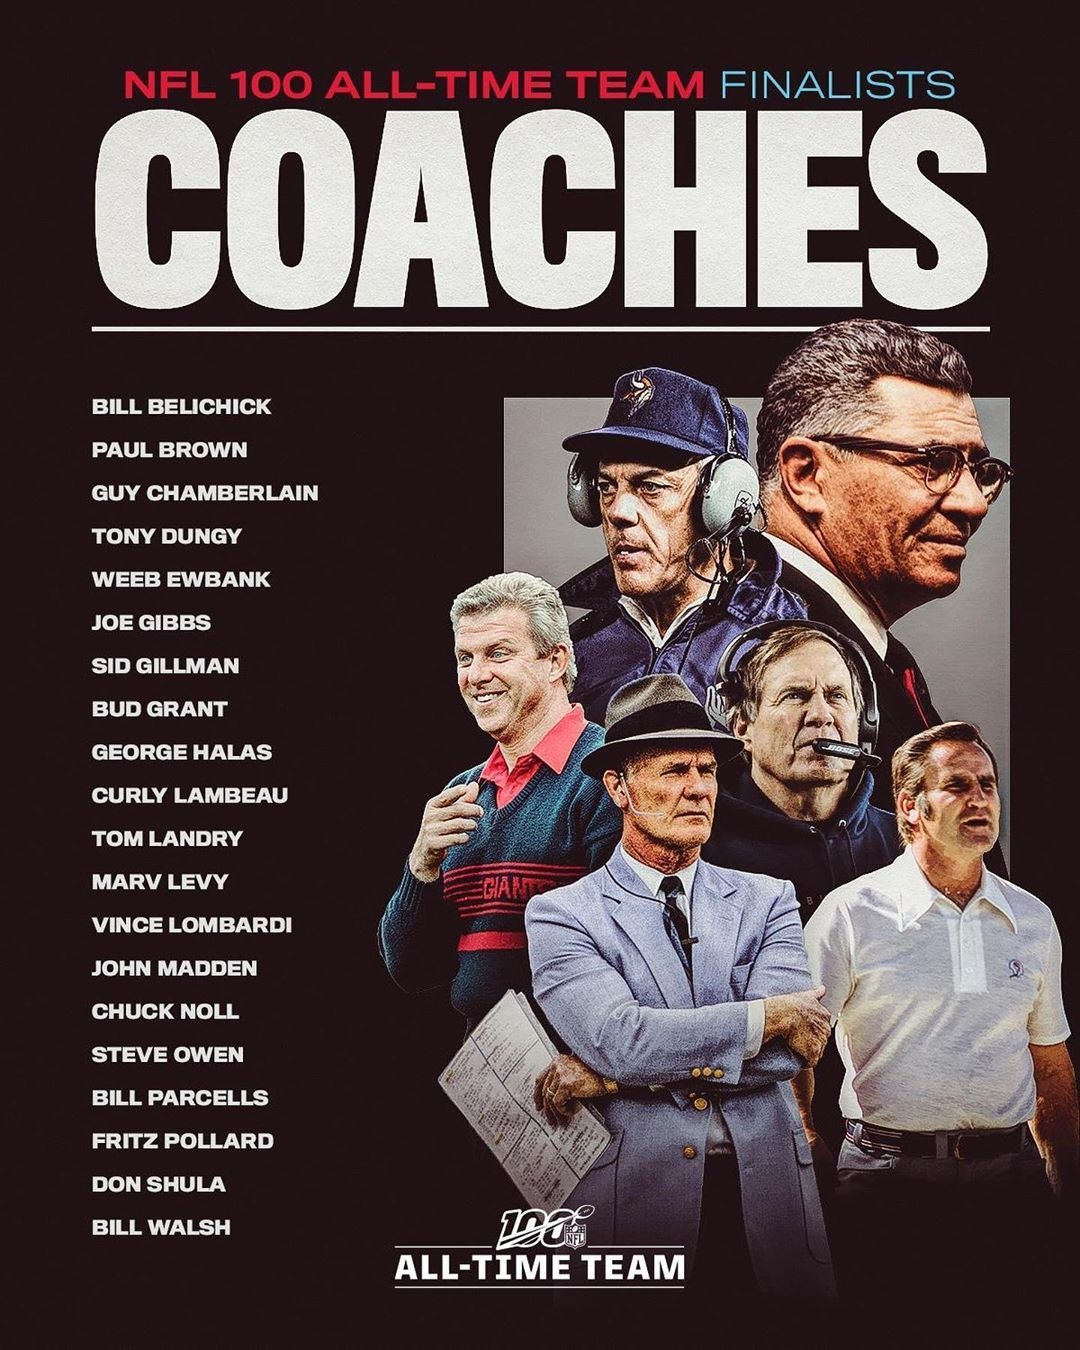 Nfl The 20 Coaching Finalists For The Nfl100 All Time Team Which 10 Coaches Will Big4 Bigfour Big4 Coaching Nfl Football Teams Nfl History